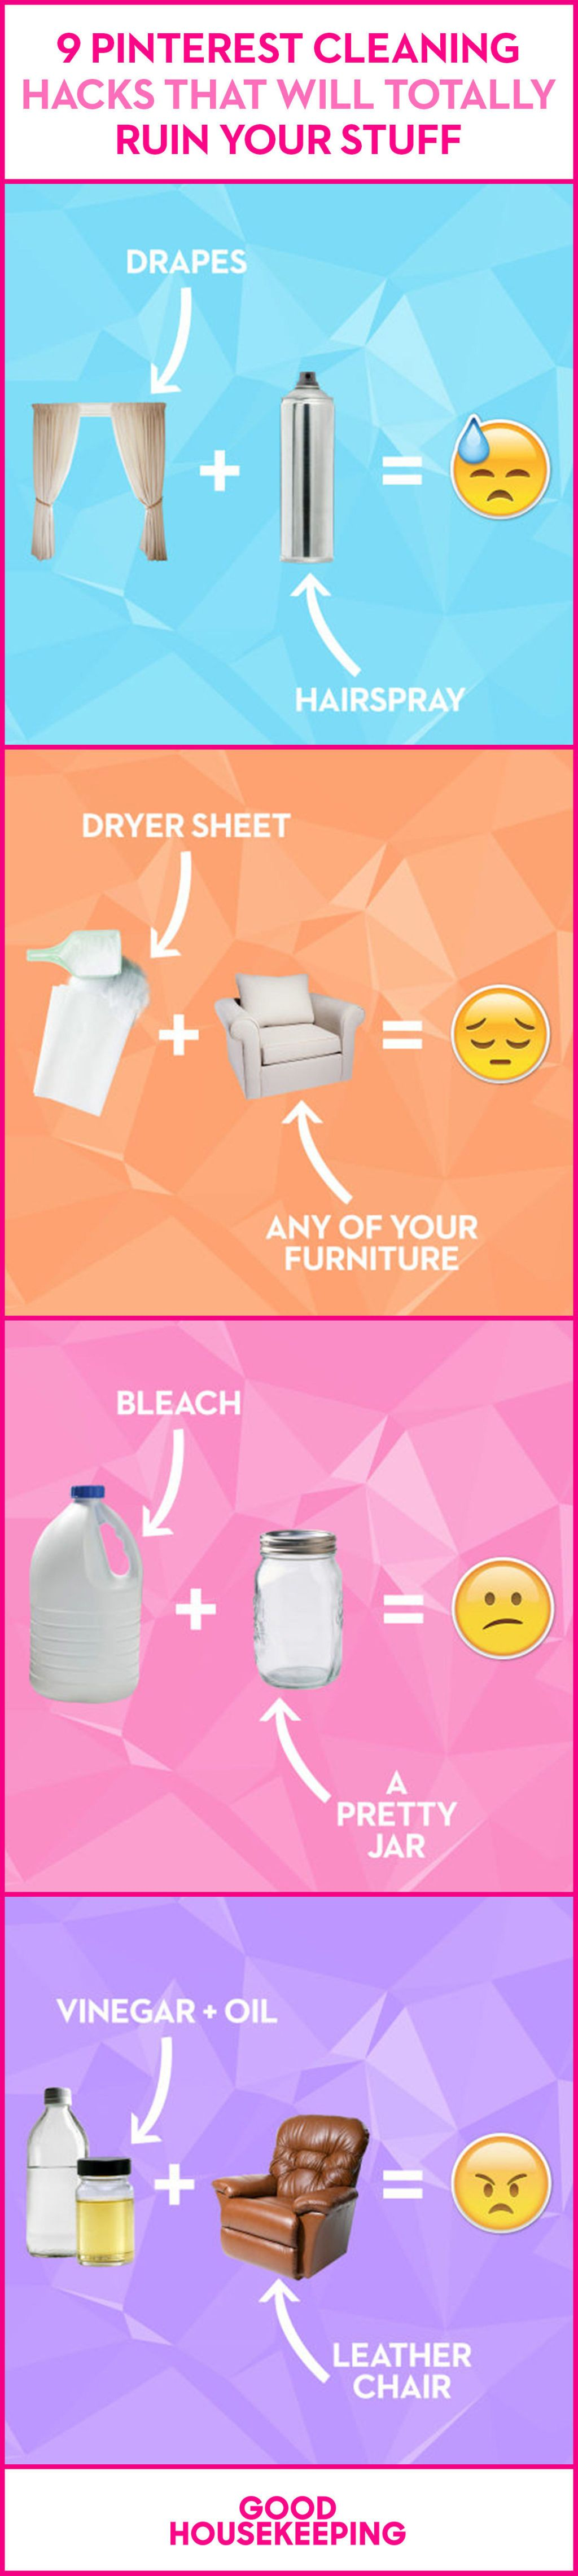 9 Pinterest Cleaning Hacks That Will Totally Ruin Your Stuff